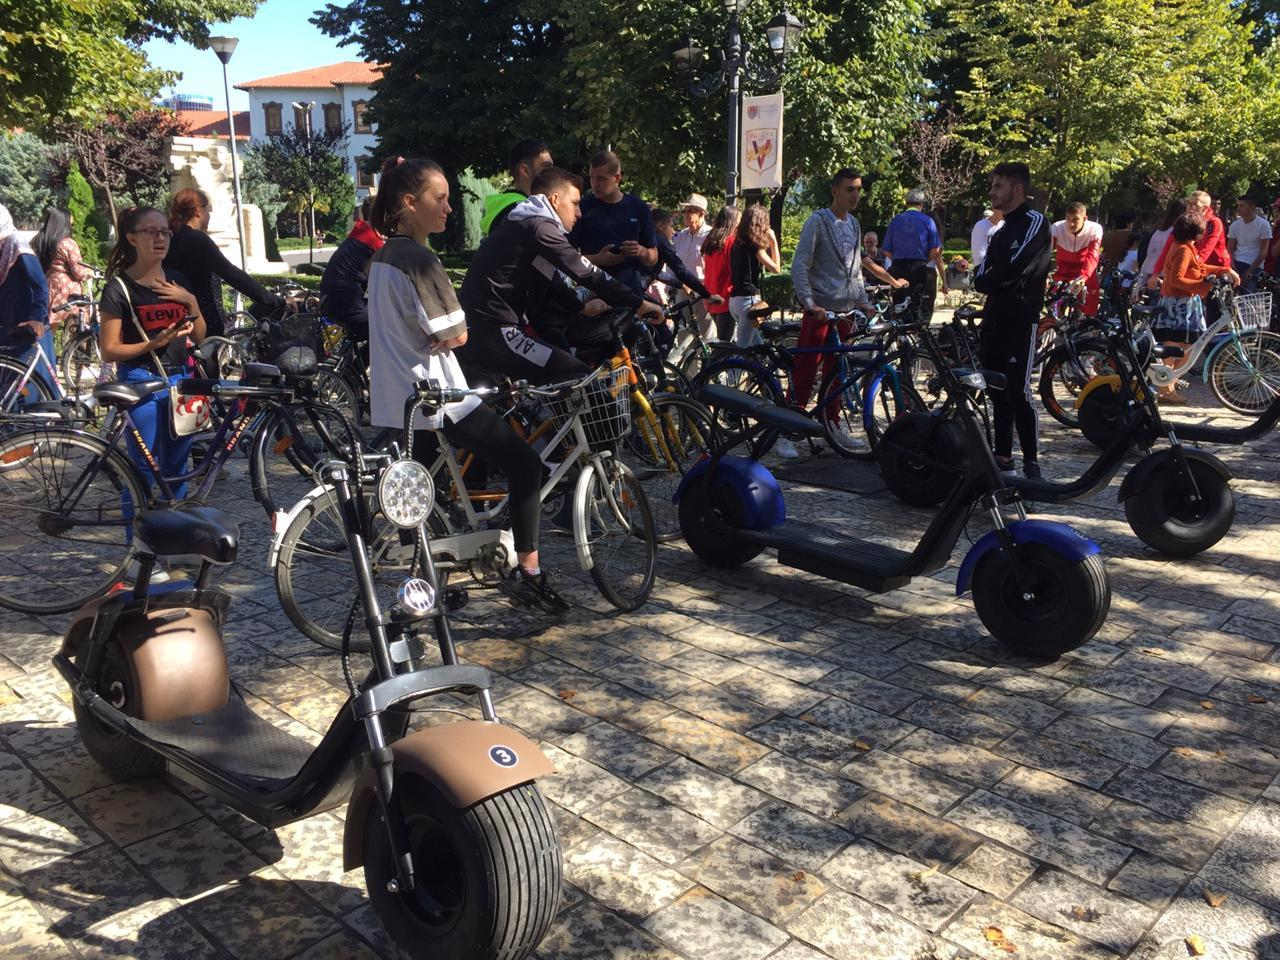 BIKE DAY – 21 SEPTEMBER 2019